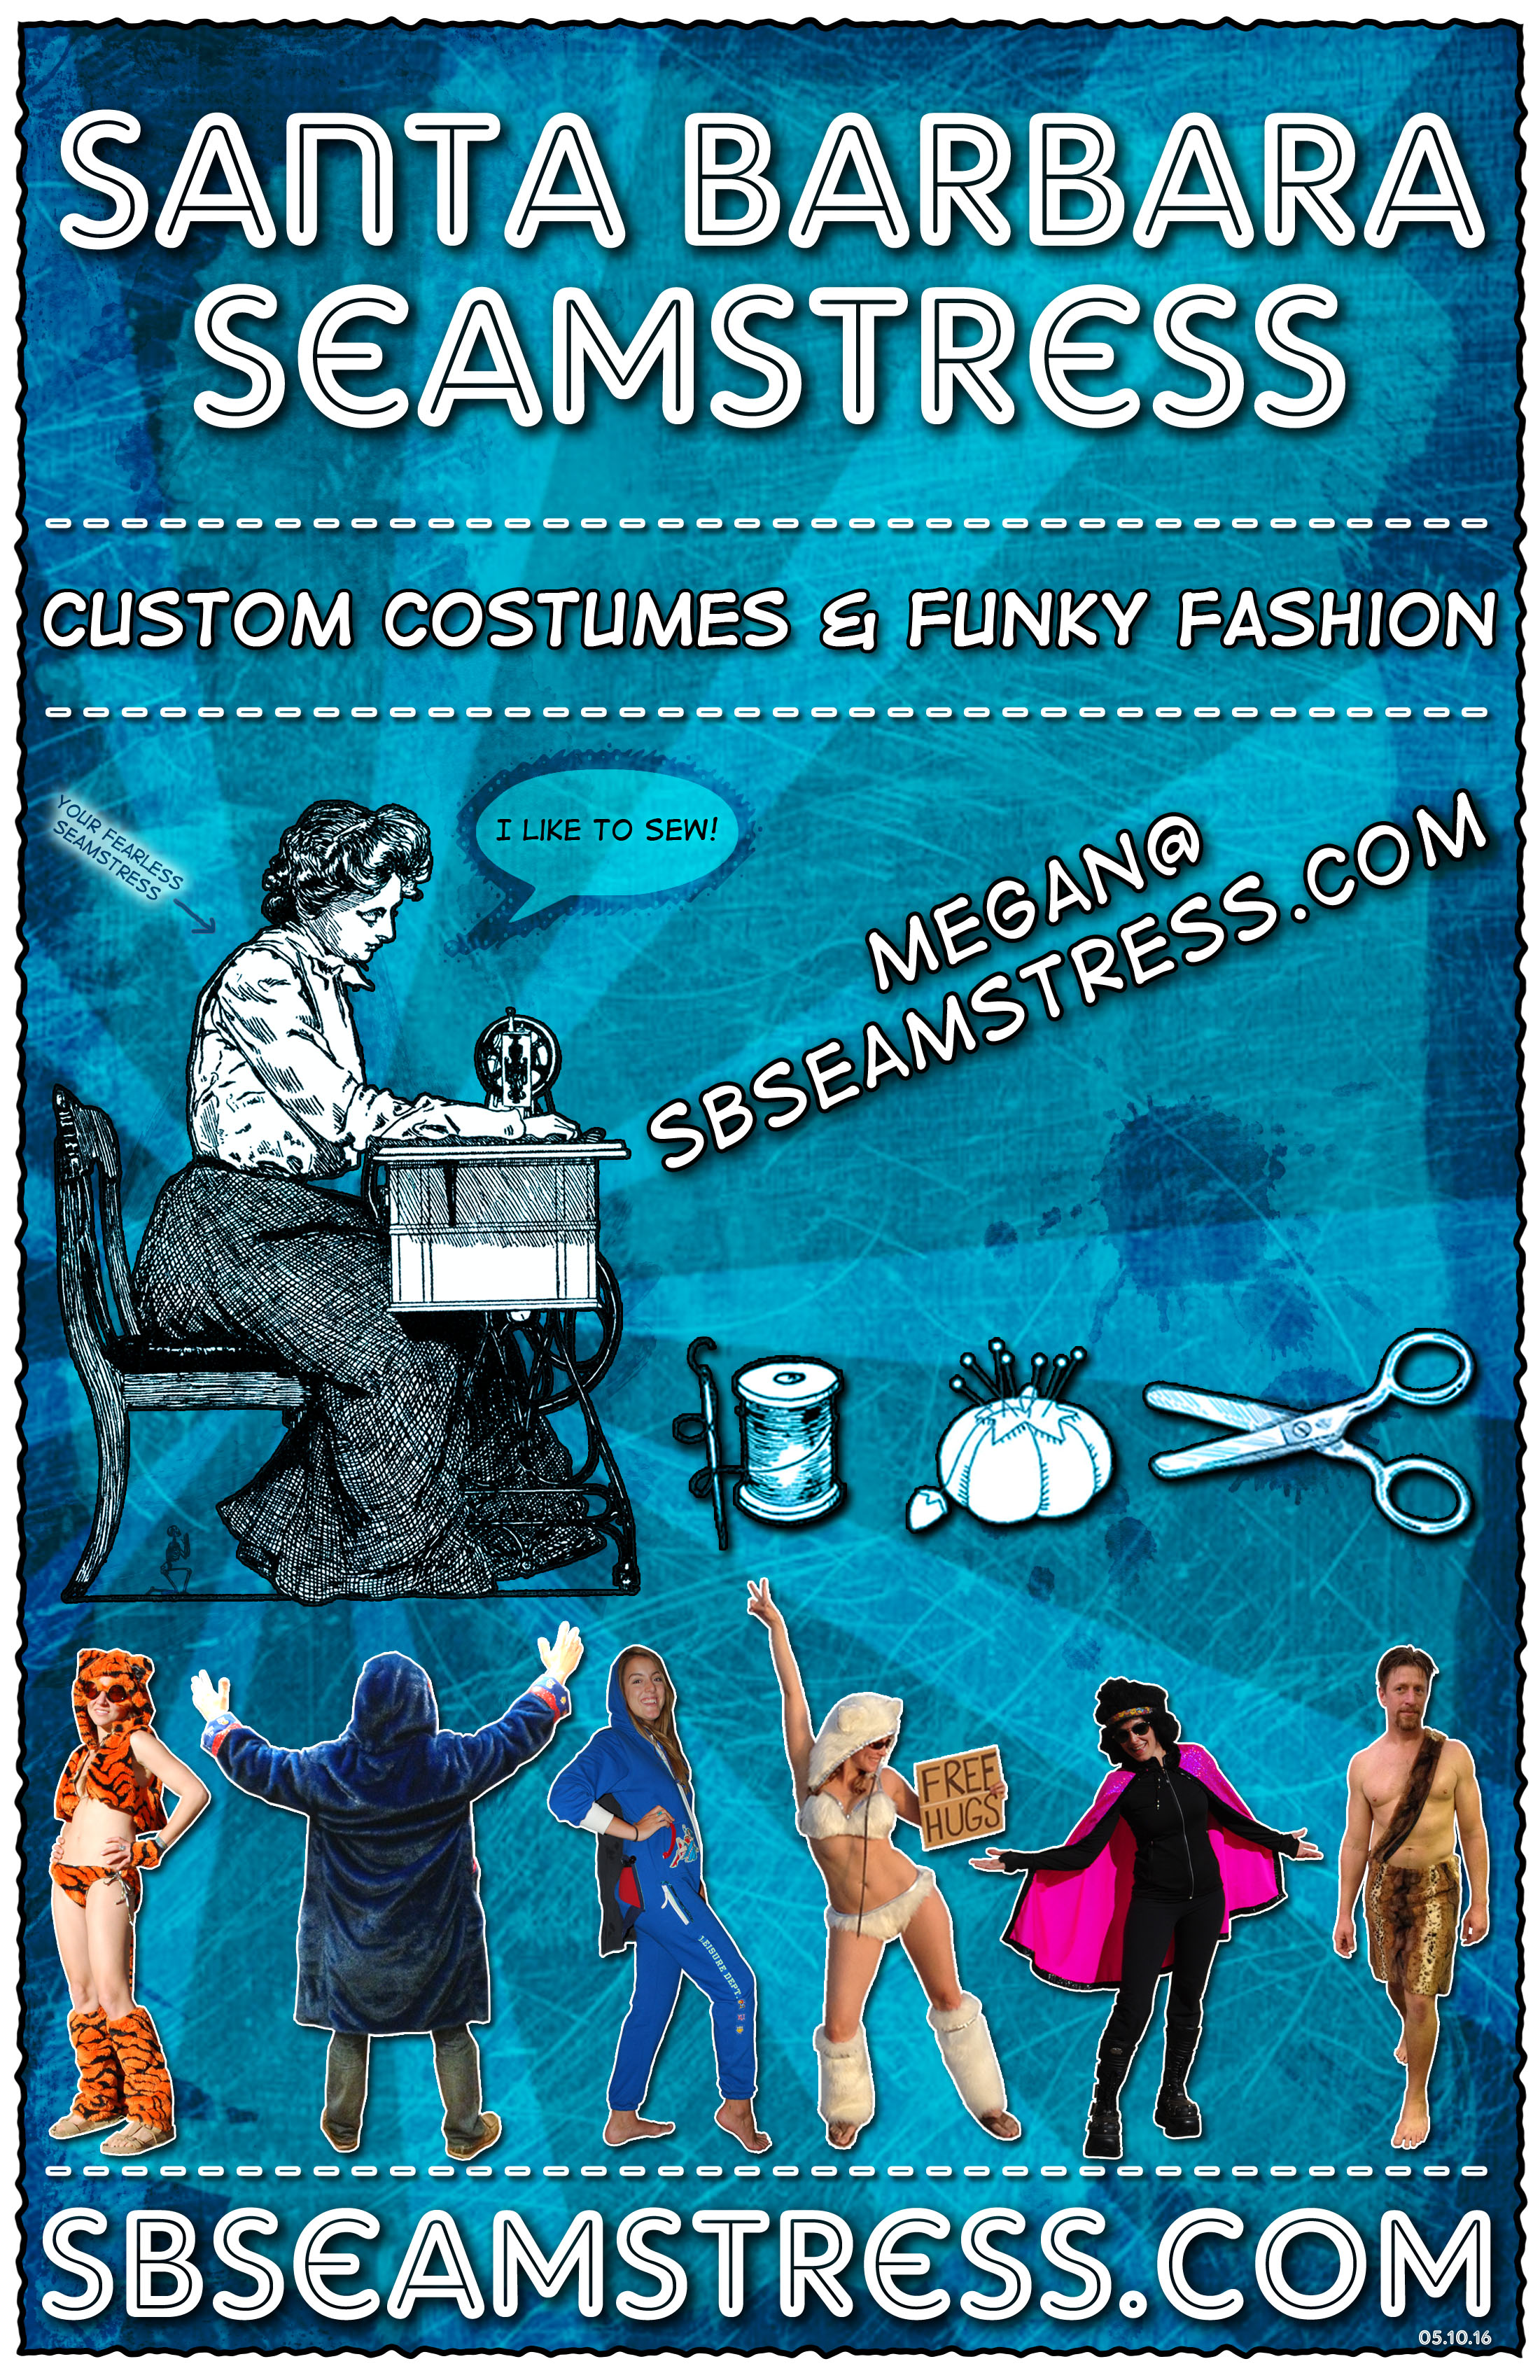 Santa Barbara Seamstress Flyer-Blue- SB Seamstress